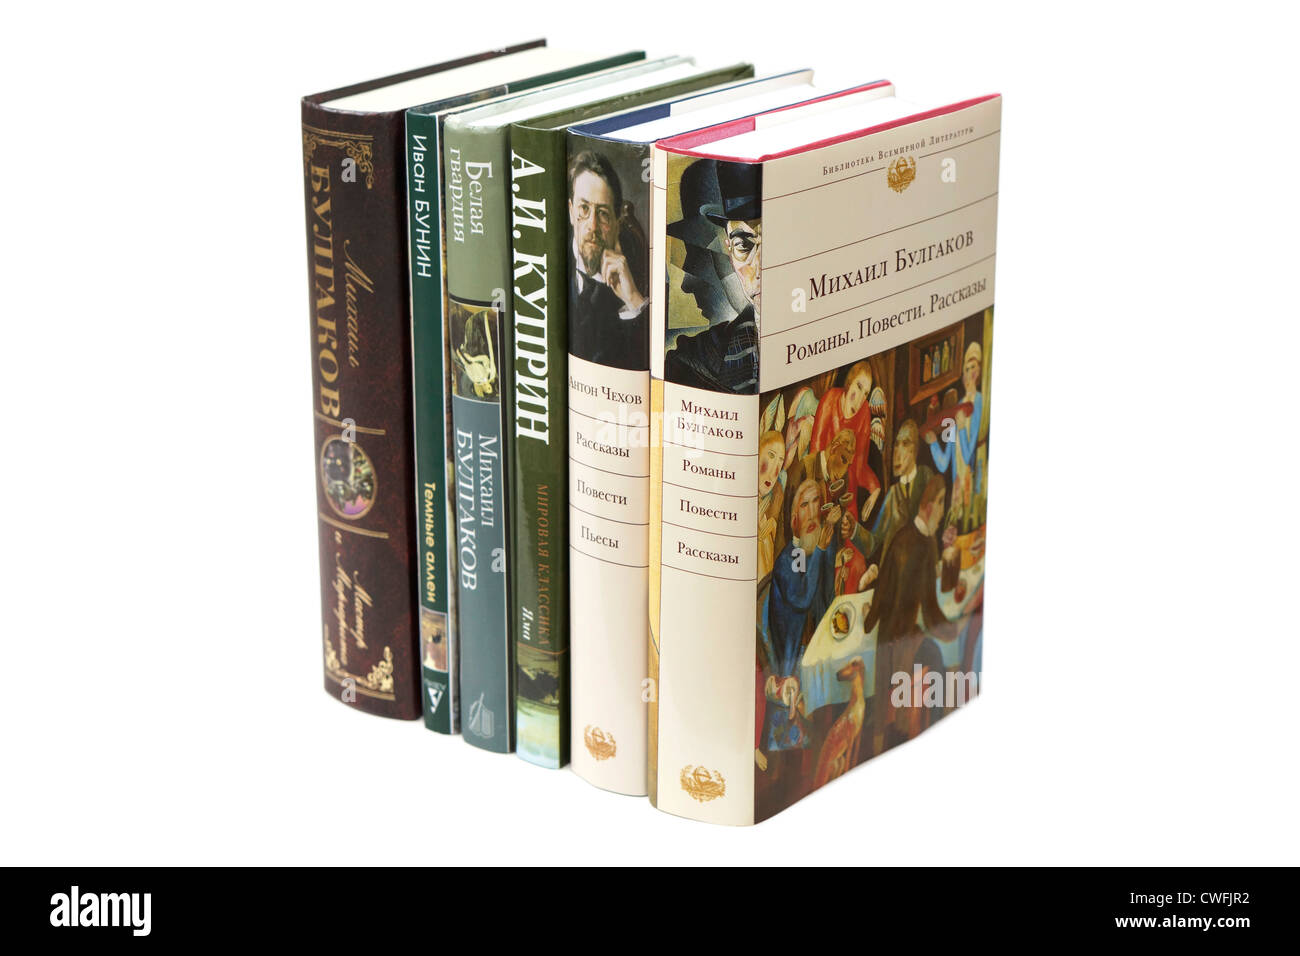 Russian Books - Stock Image